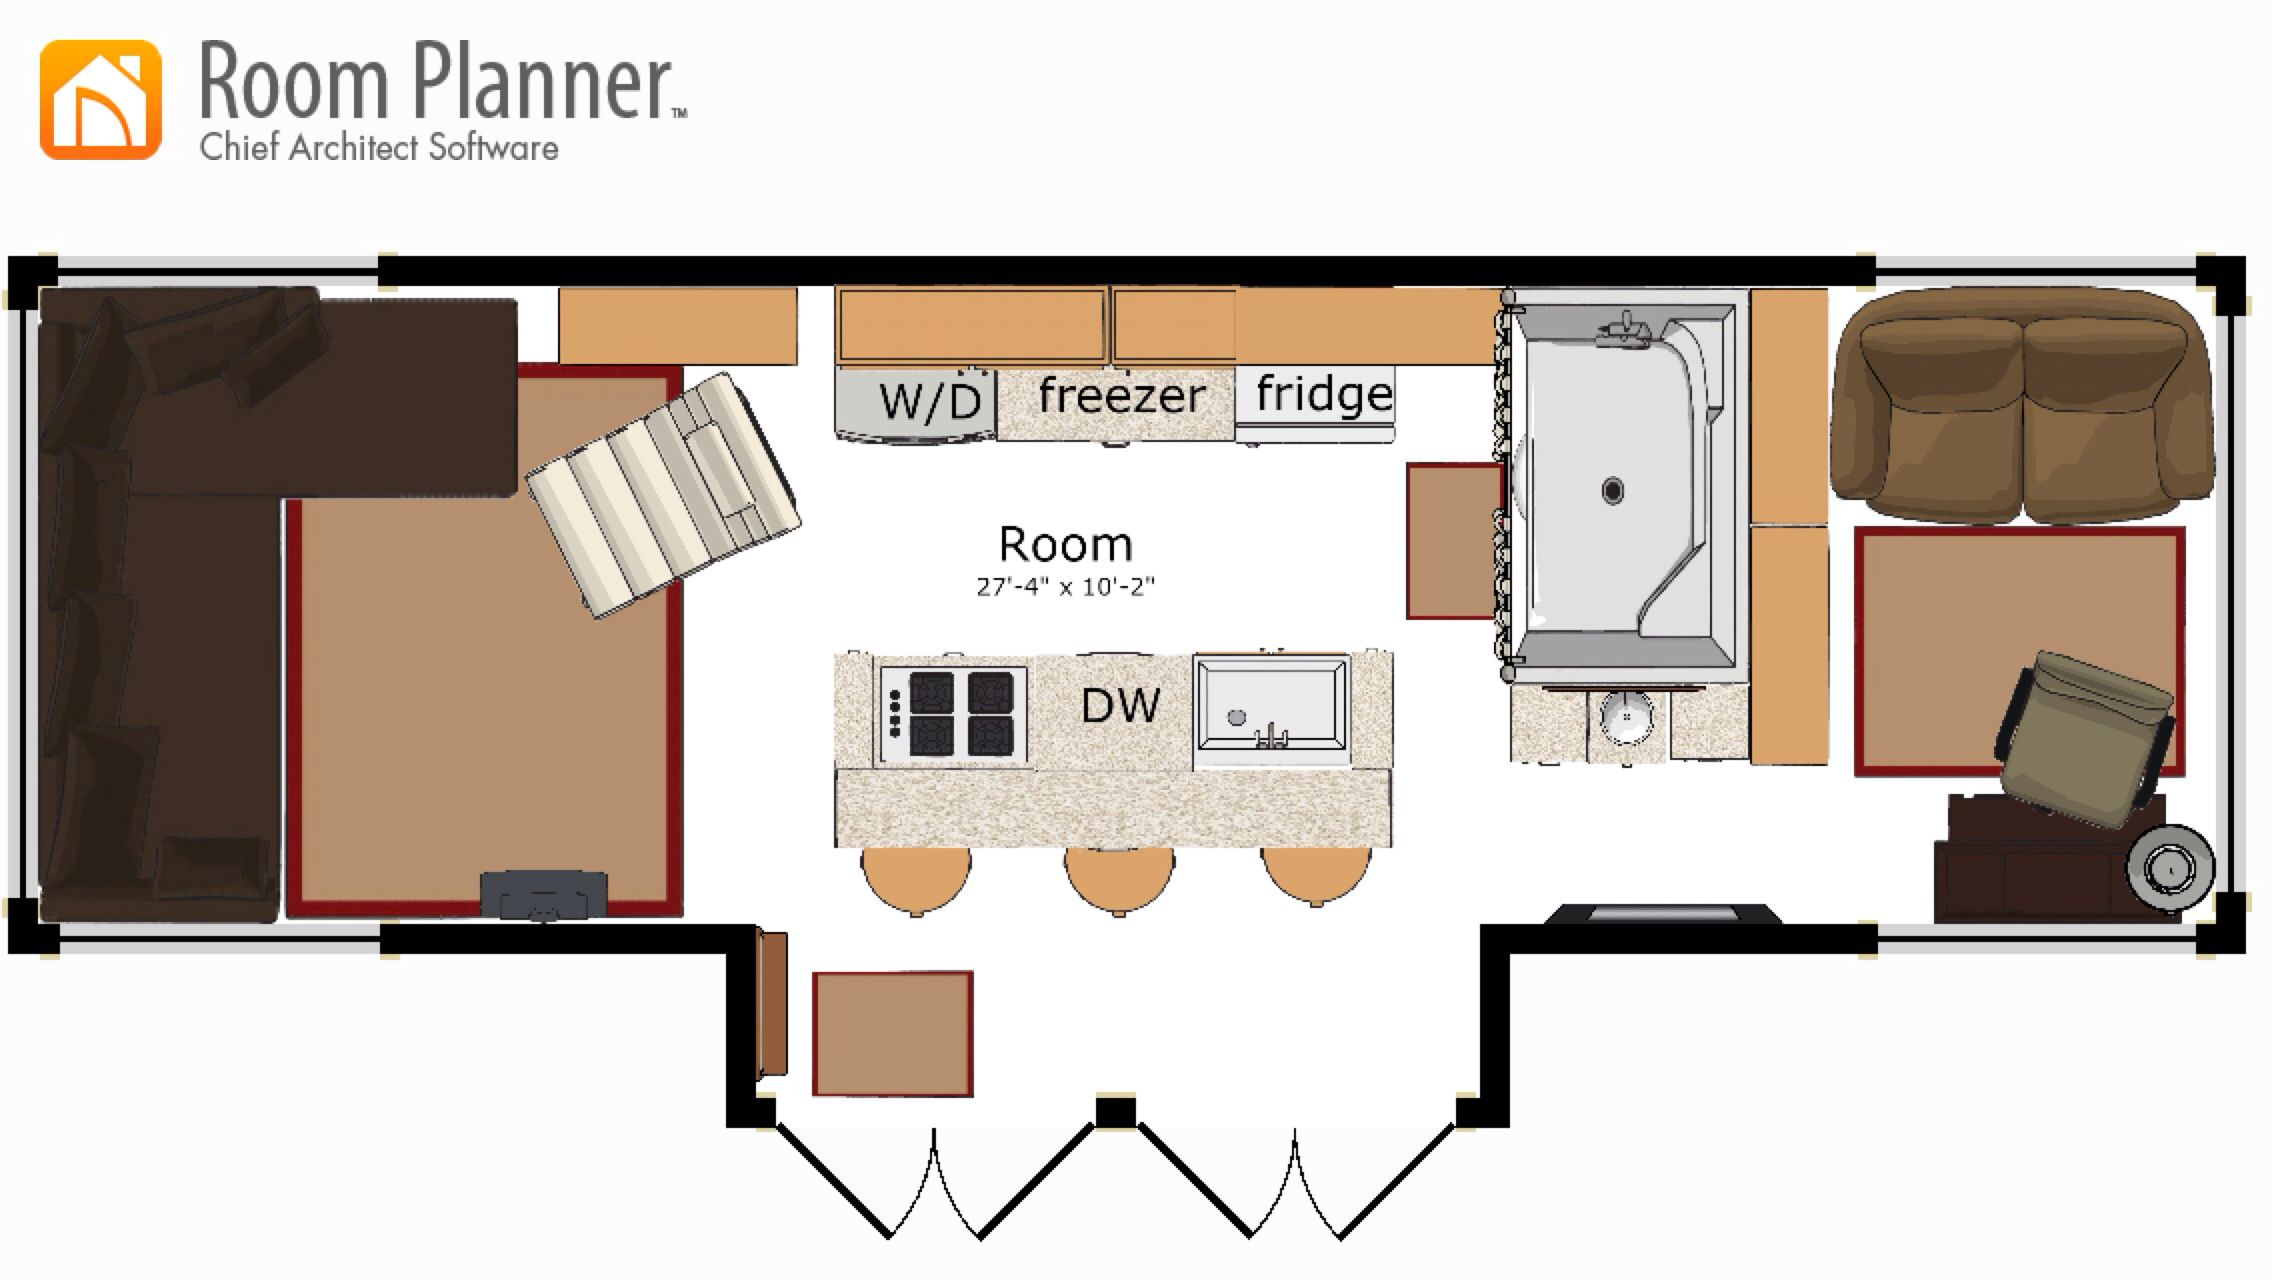 tiny house concept with large kitchen kitchen island contains stove sink dishwasher and - Tiny House Washer Dryer 2